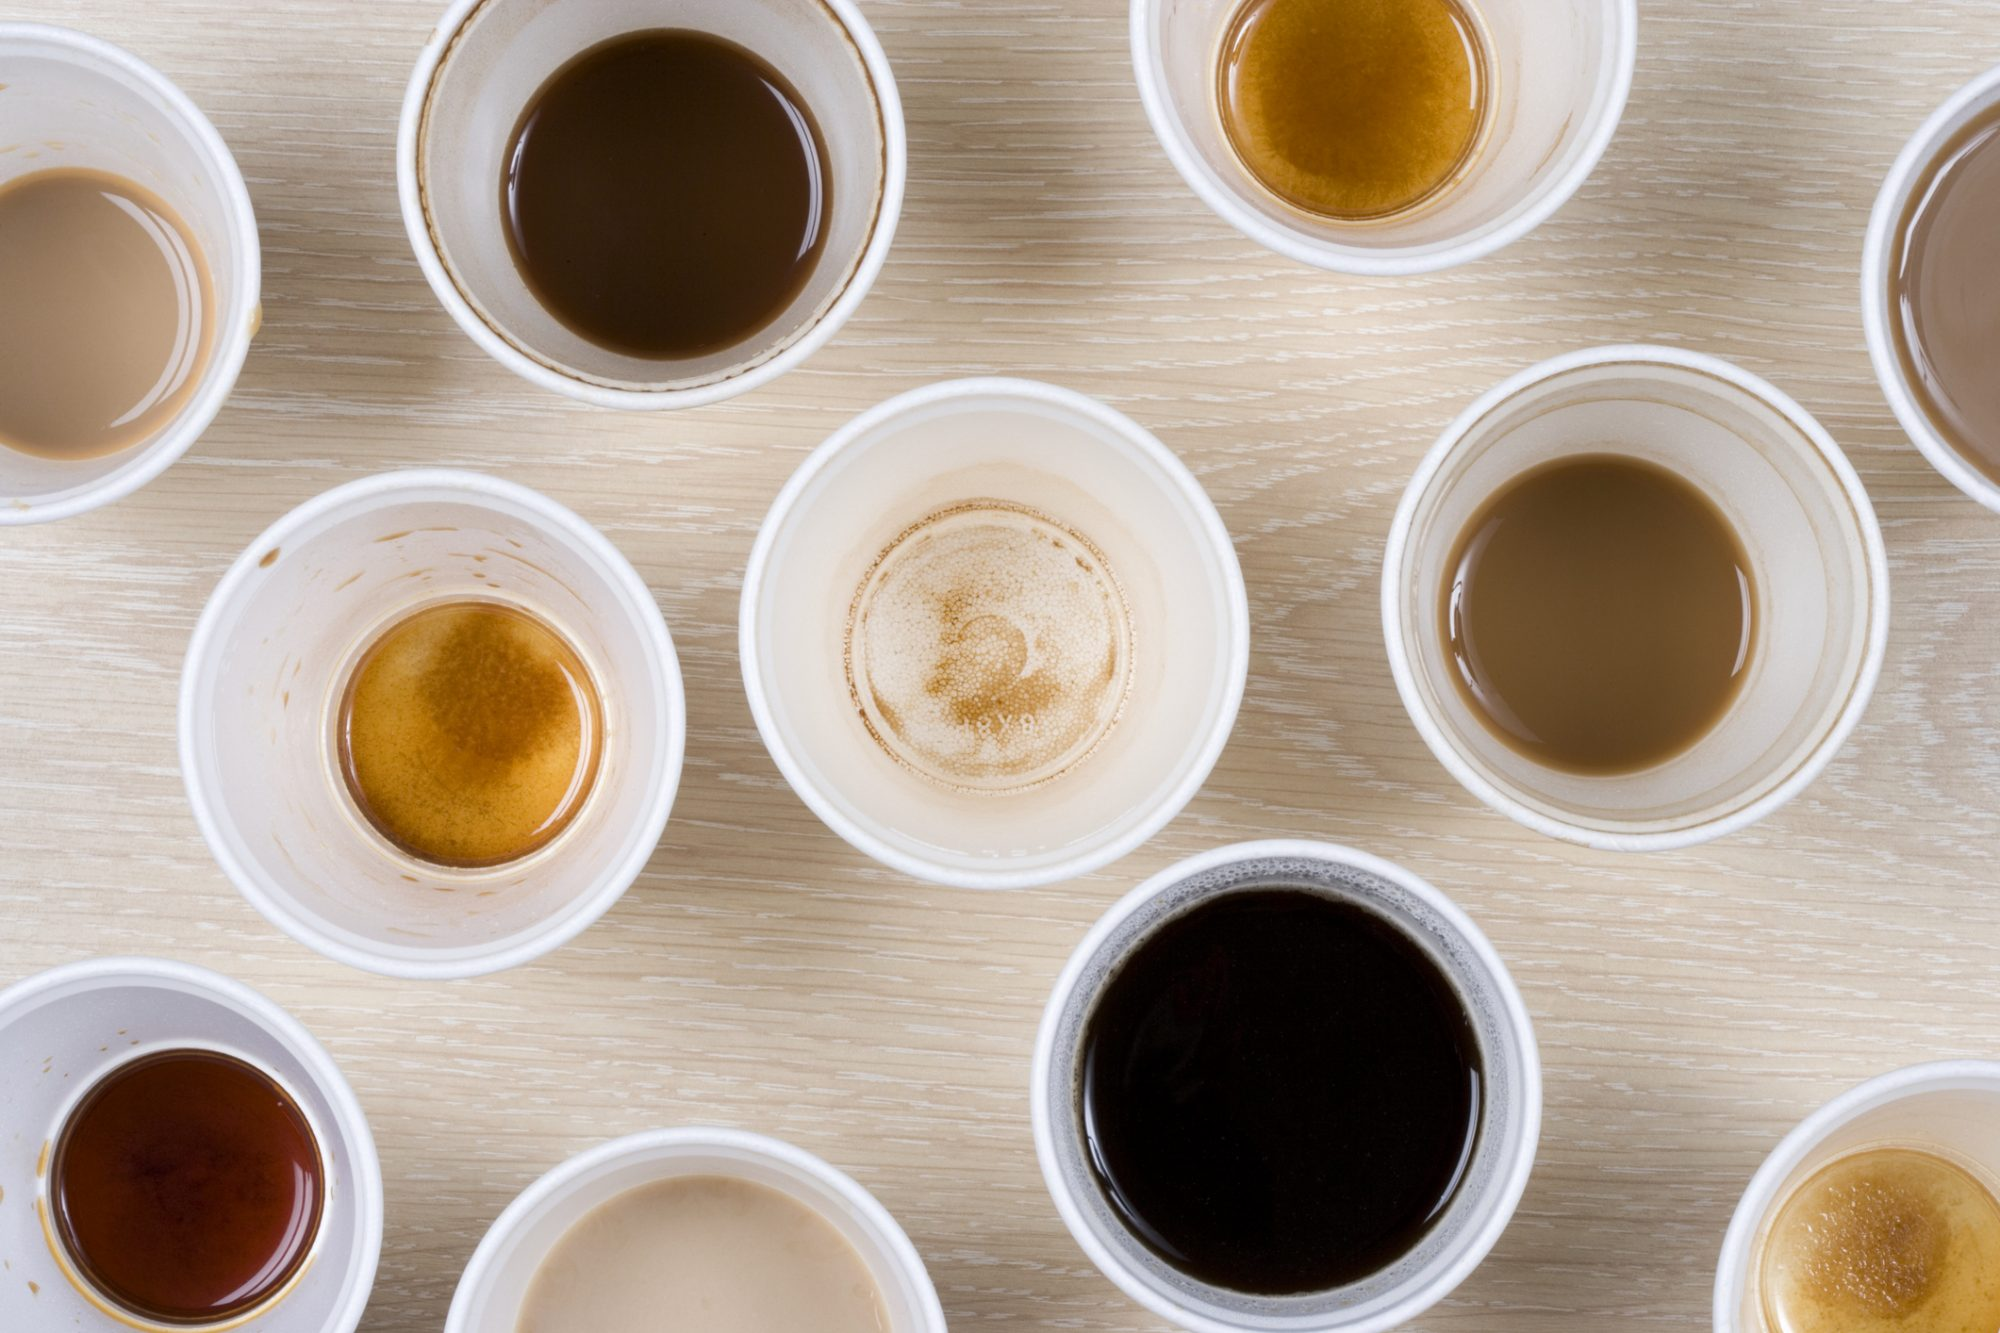 getty-coffee-cups-image